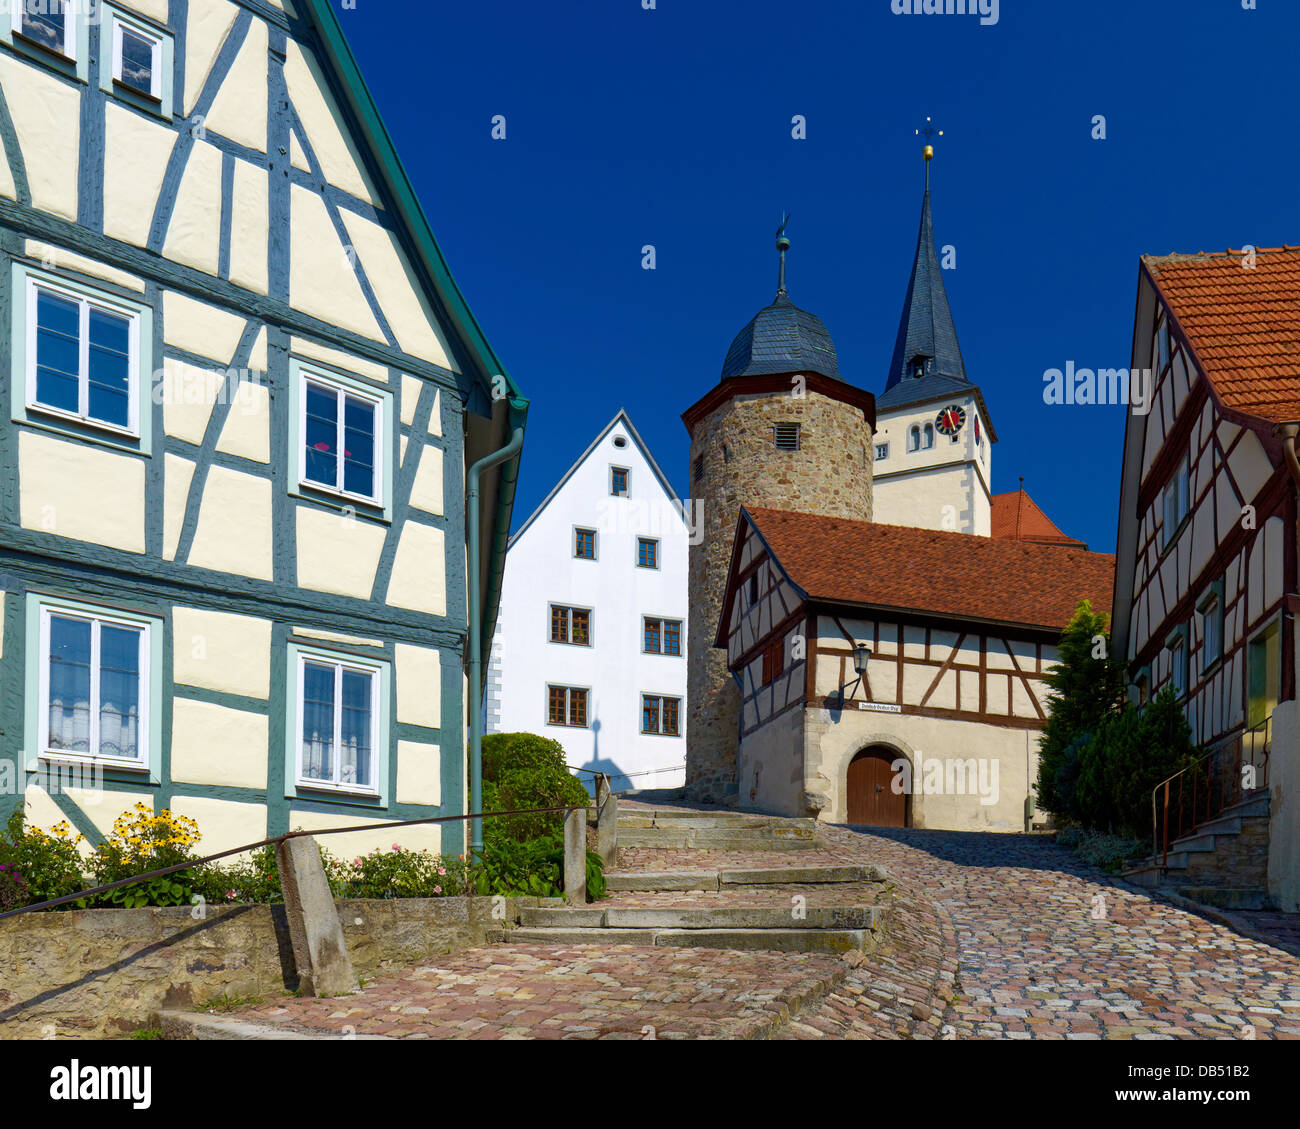 Ascent to church and fortress Nordheim vor der Rhoen, Rhoen Grabfeld district, Lower Franconia, Bavaria, Germany - Stock Image